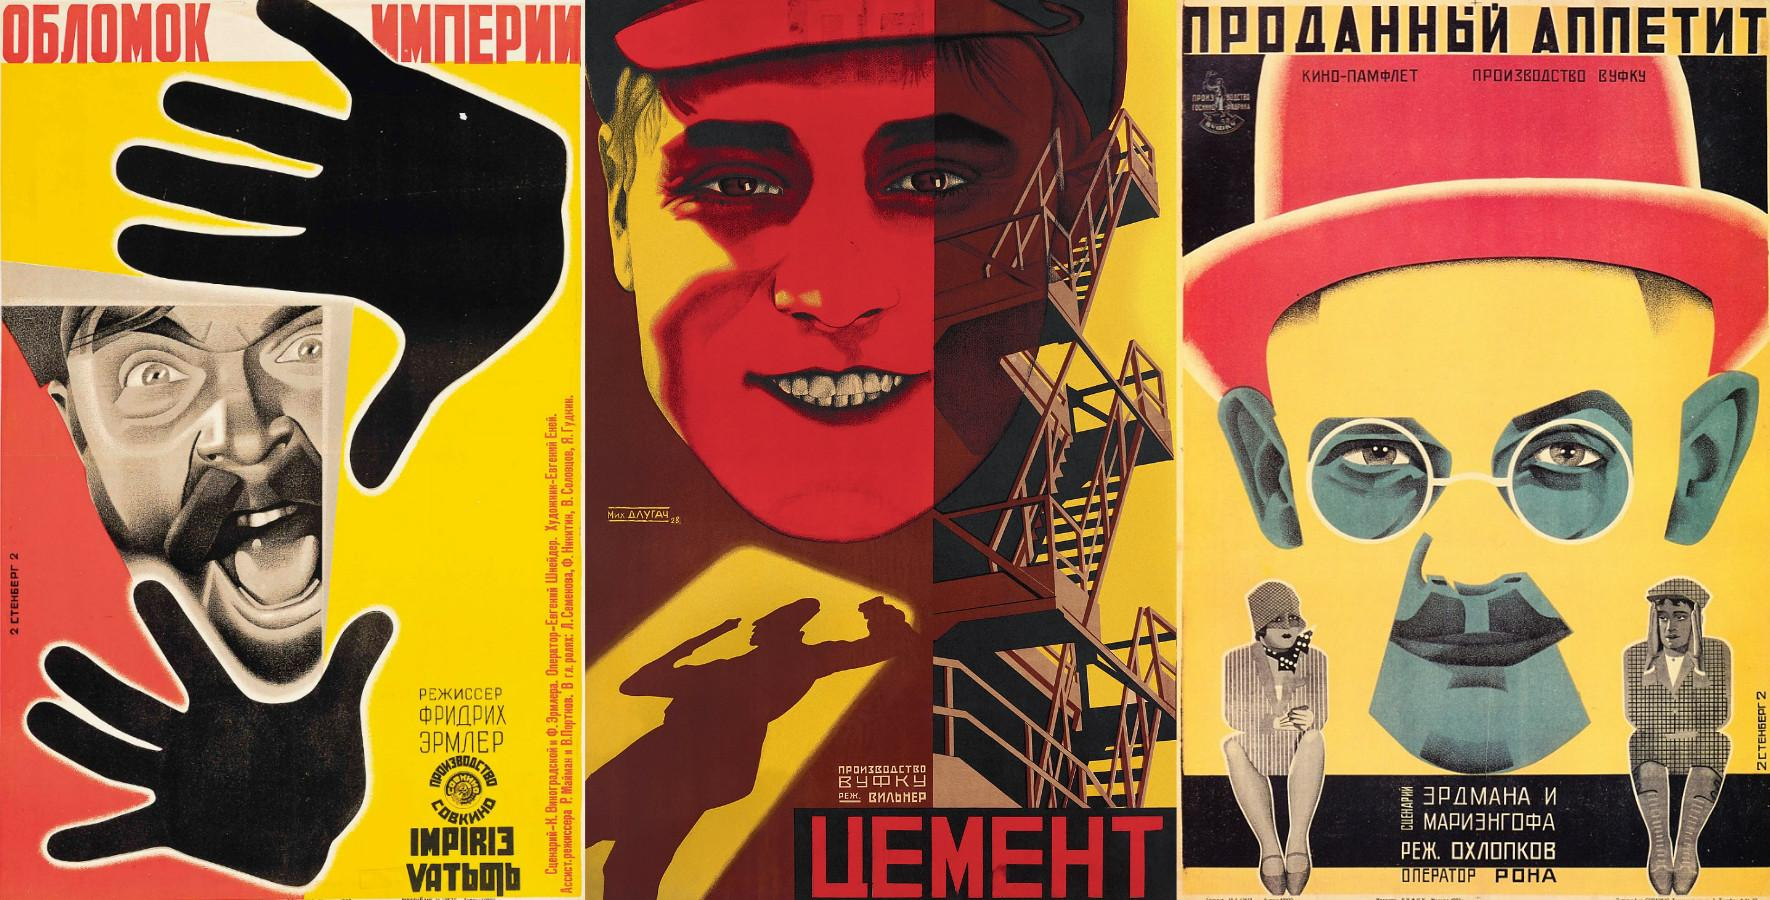 russian propaganda posters with simple geometric shapes, cutouts, and photo masking visual effect